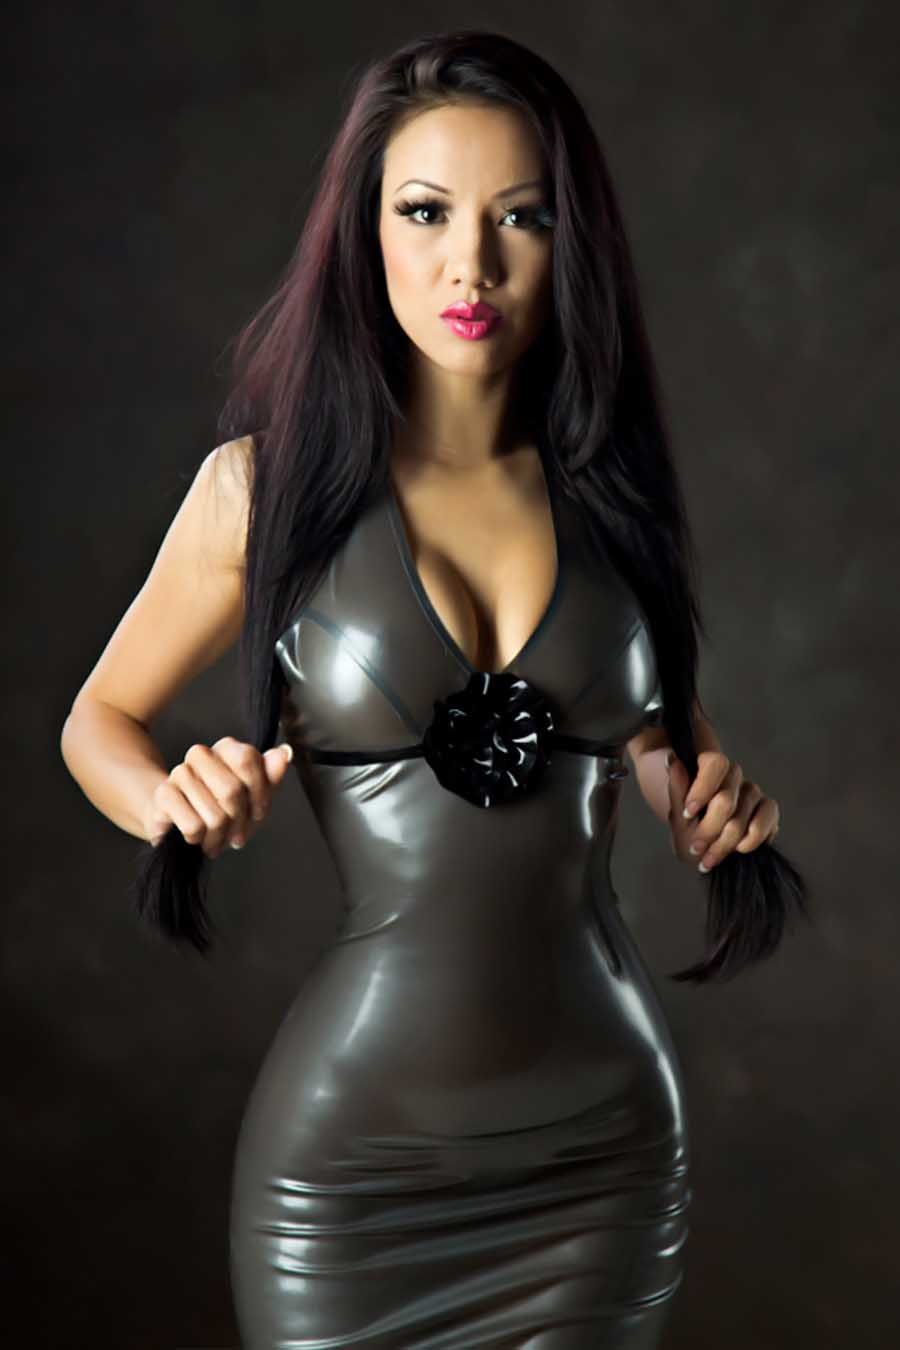 from Raphael women in latex nude pics